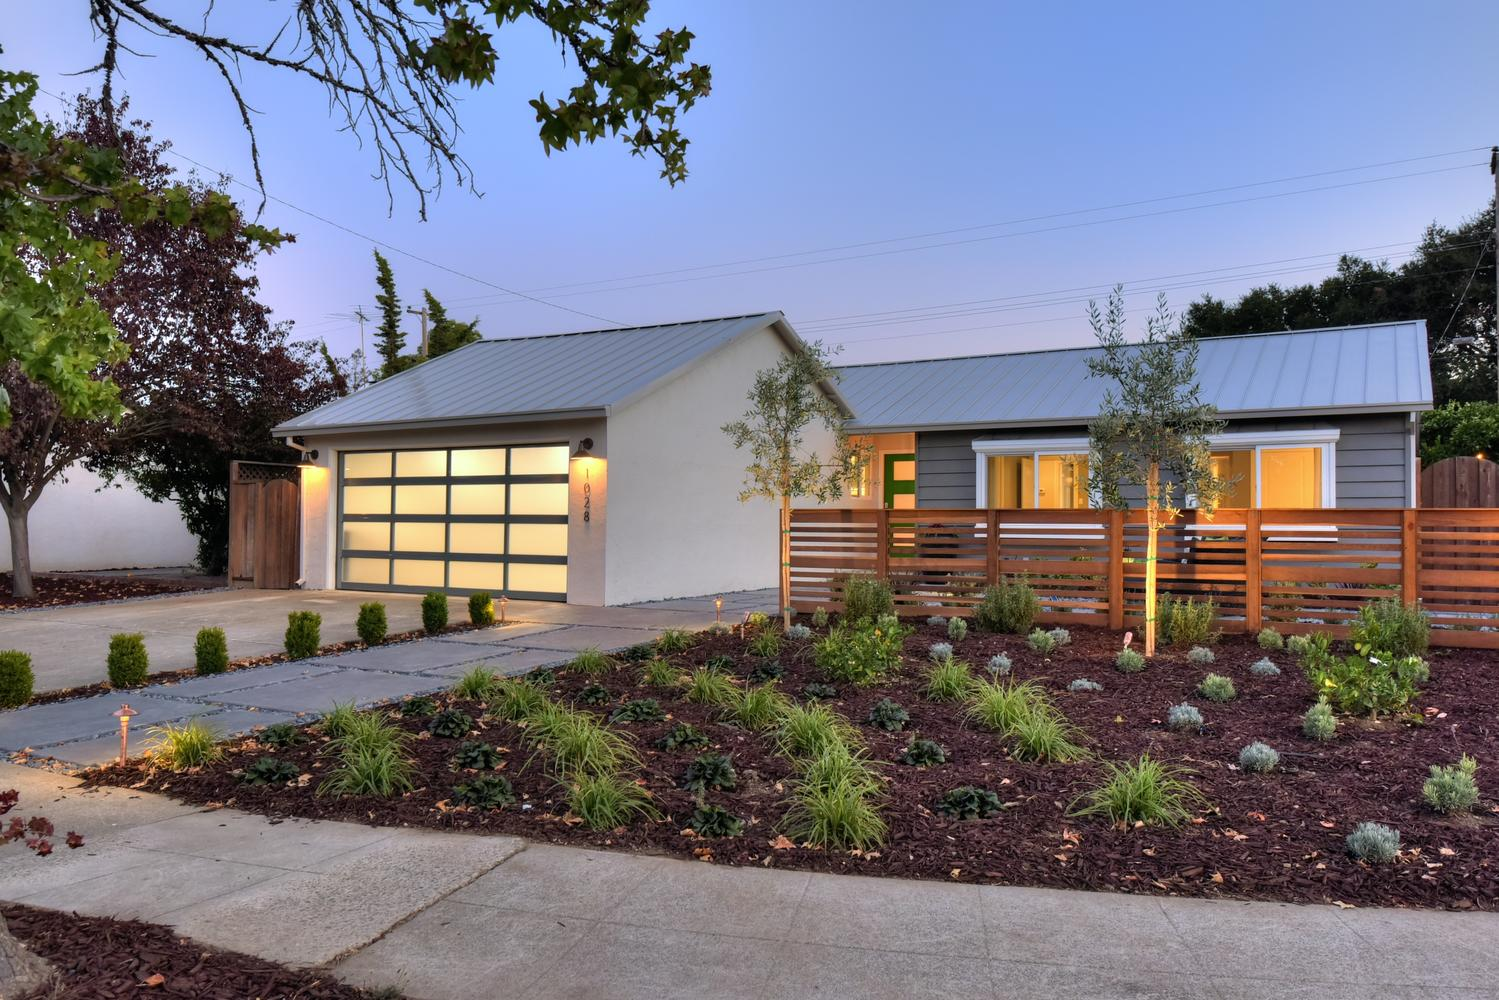 1028 Steinway Ave Campbell CA-large-004-22-Front View at Dusk-1499x1000-72dpi.jpg